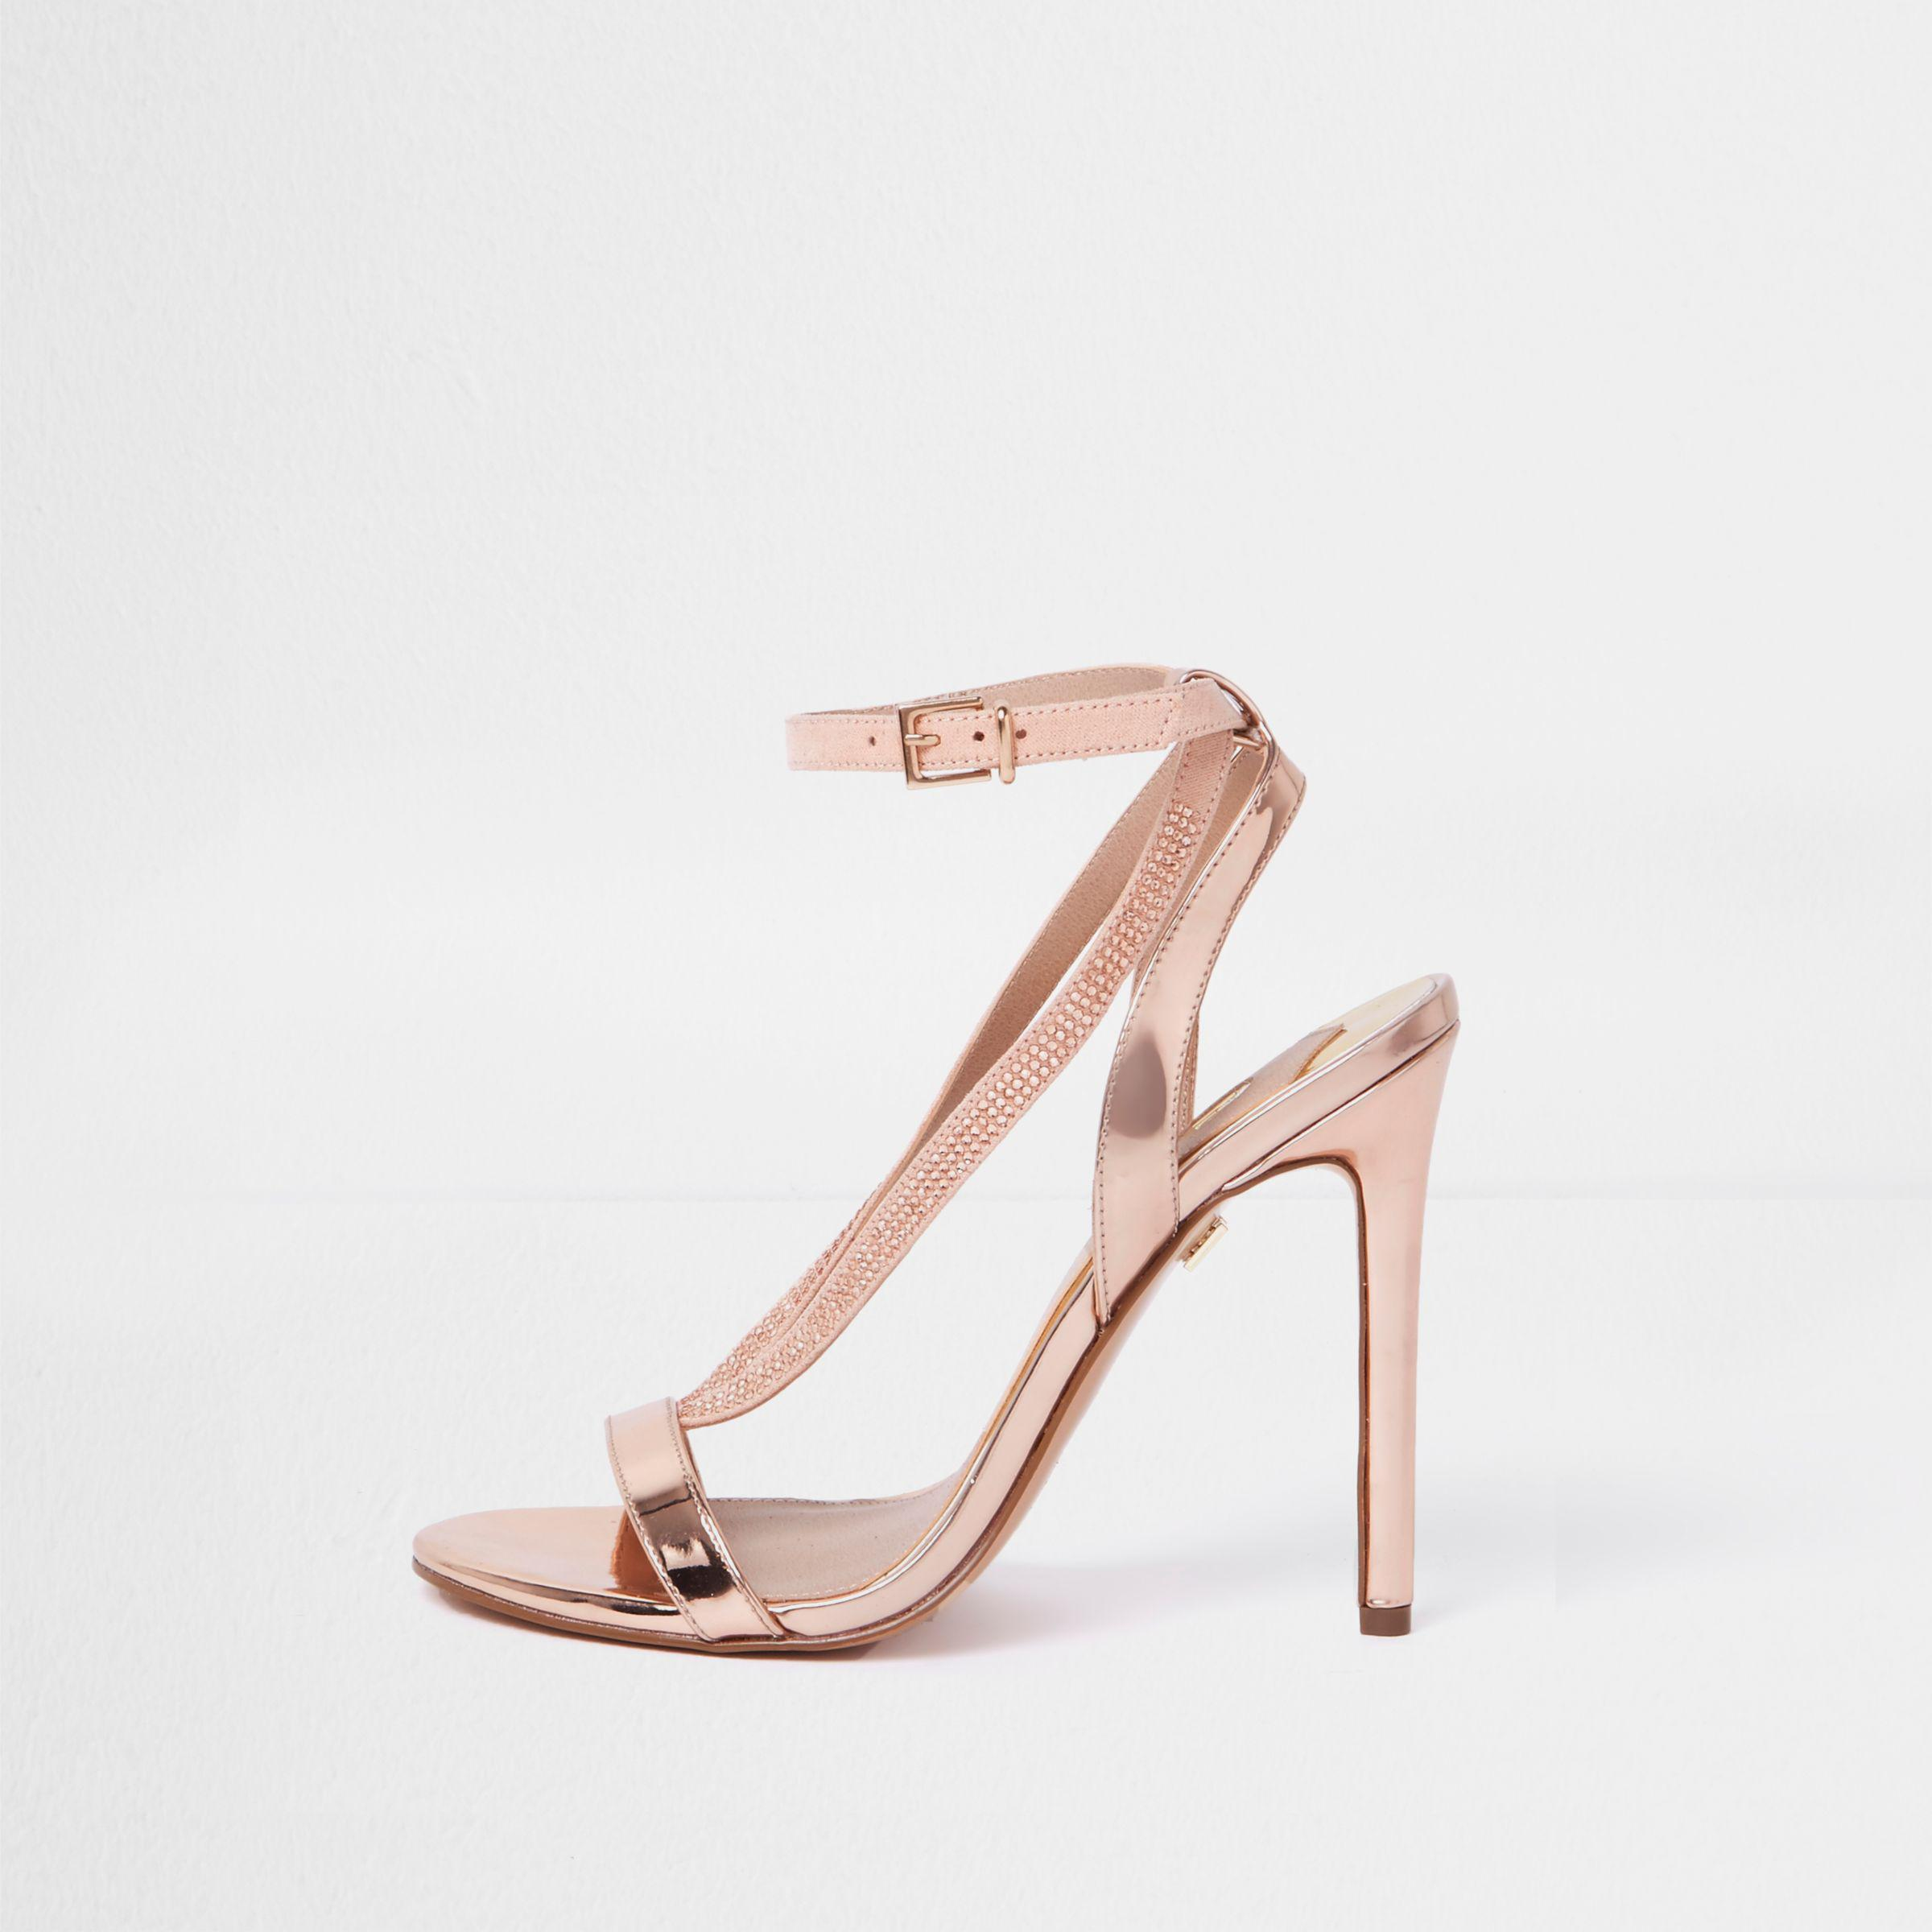 53a01f7e739 Lyst - River Island Rose Gold Wide Fit Barely There Sandals in Pink